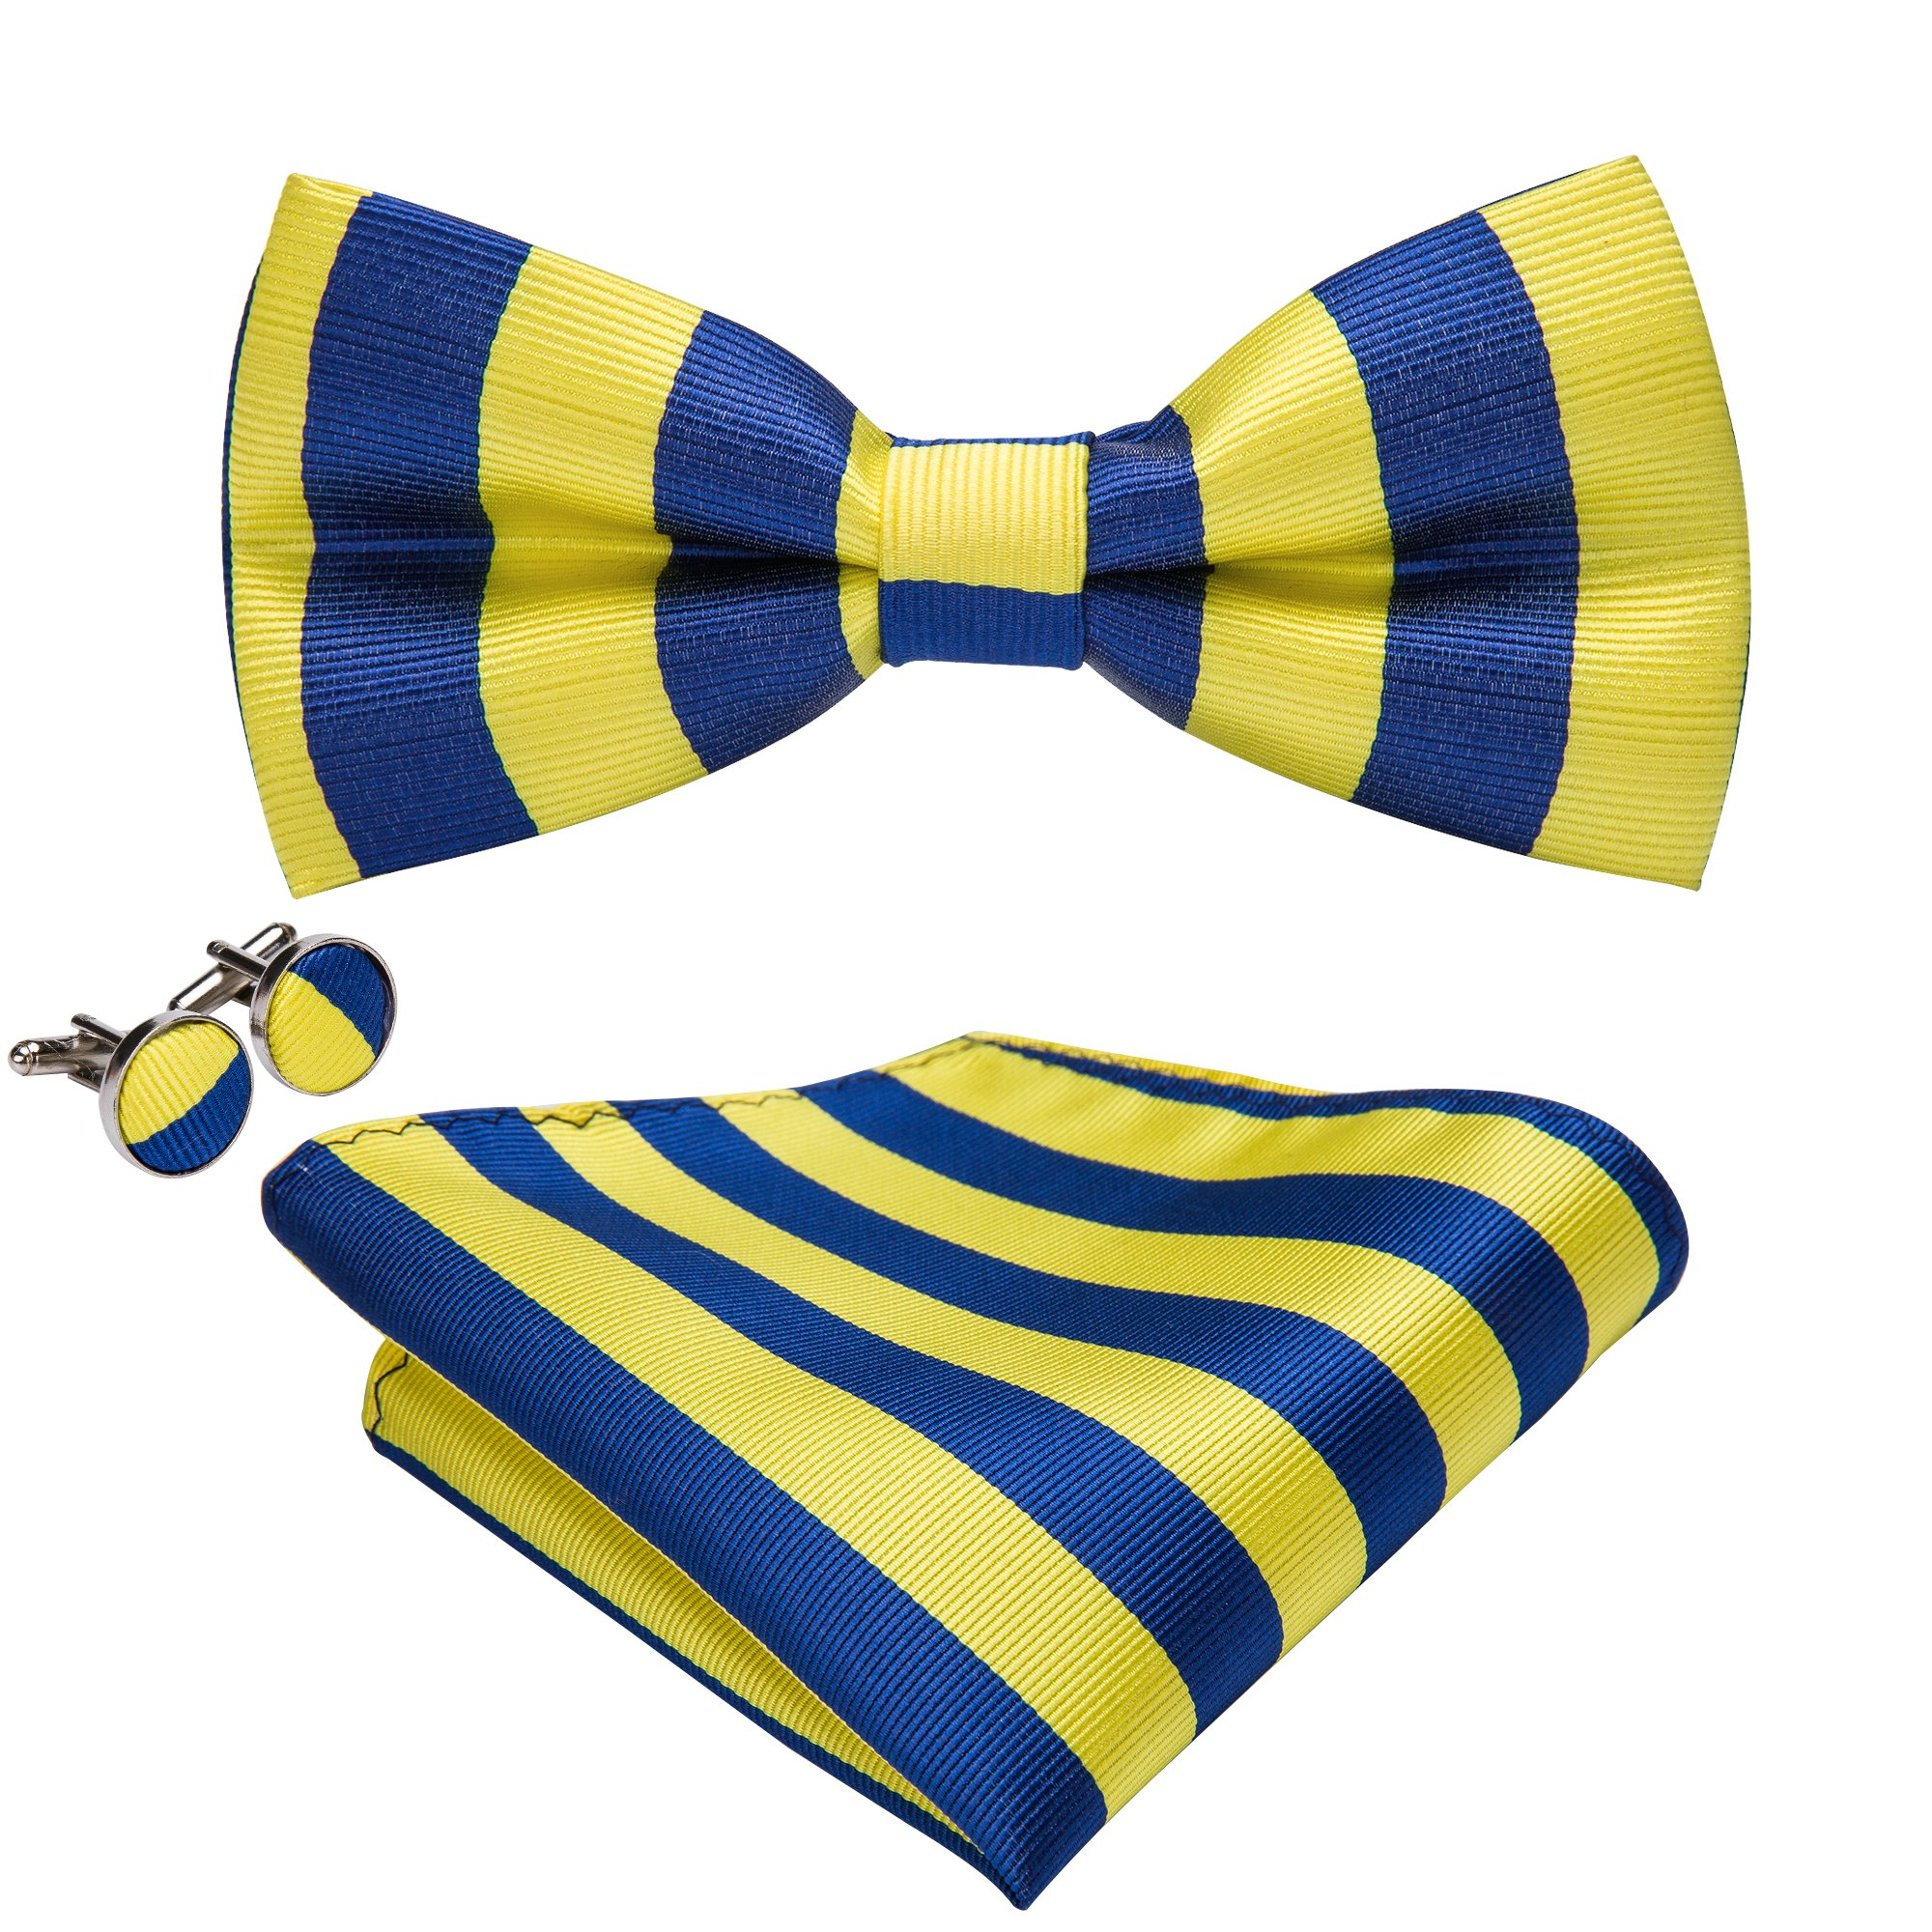 Stripe Bow Tie Set Blue Woven Silk Wedding Party Fashion Business